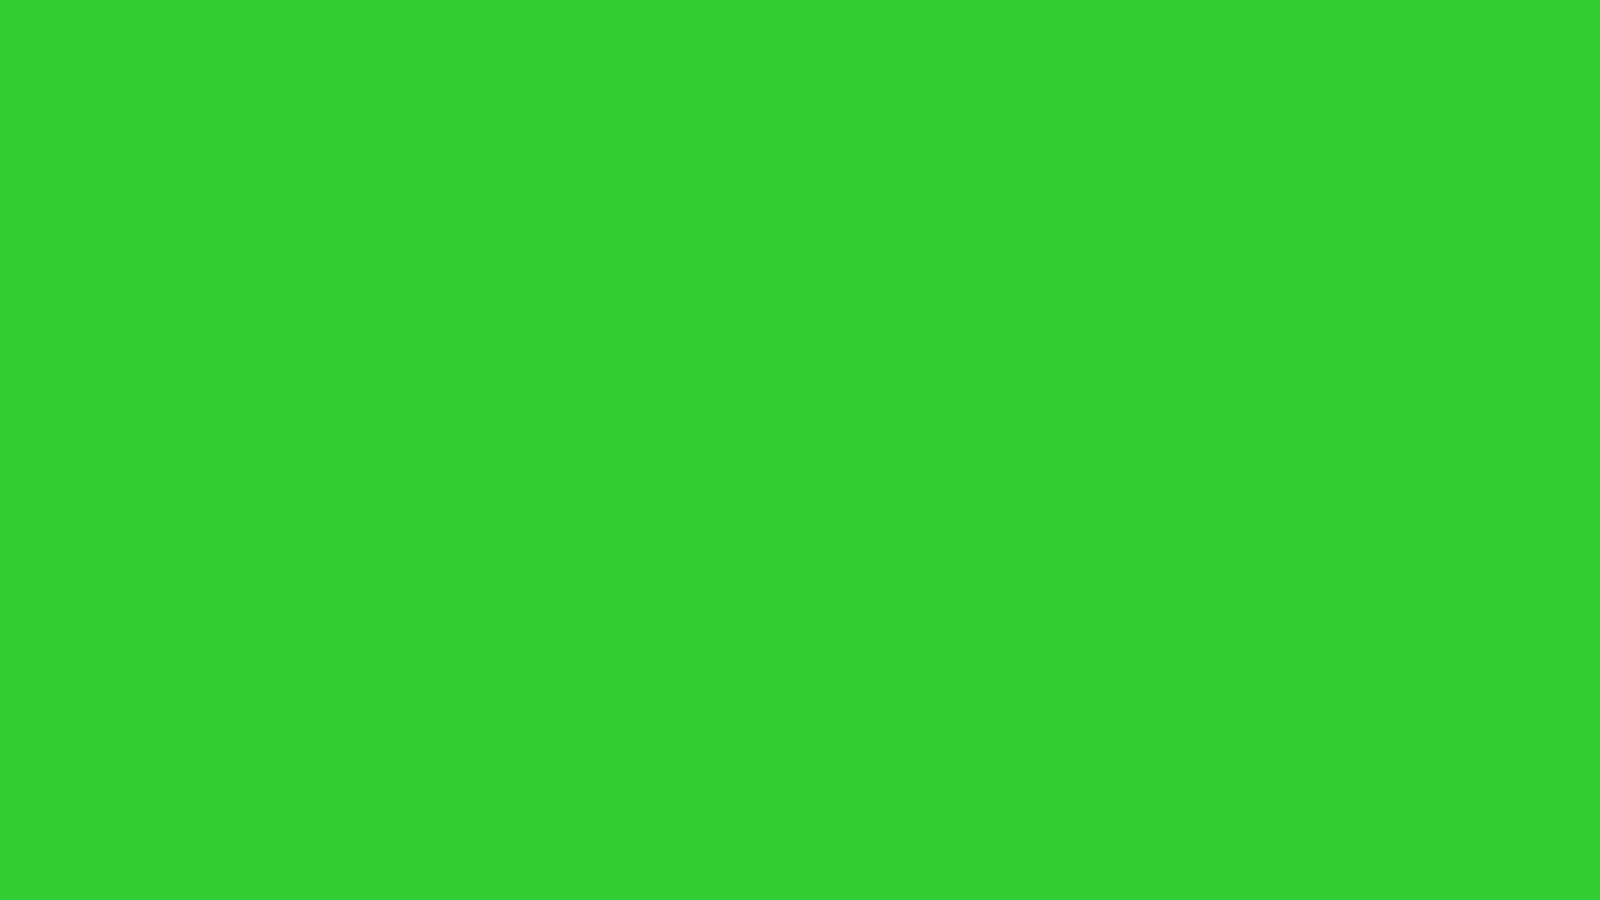 1600x900 Lime Green Solid Color Background